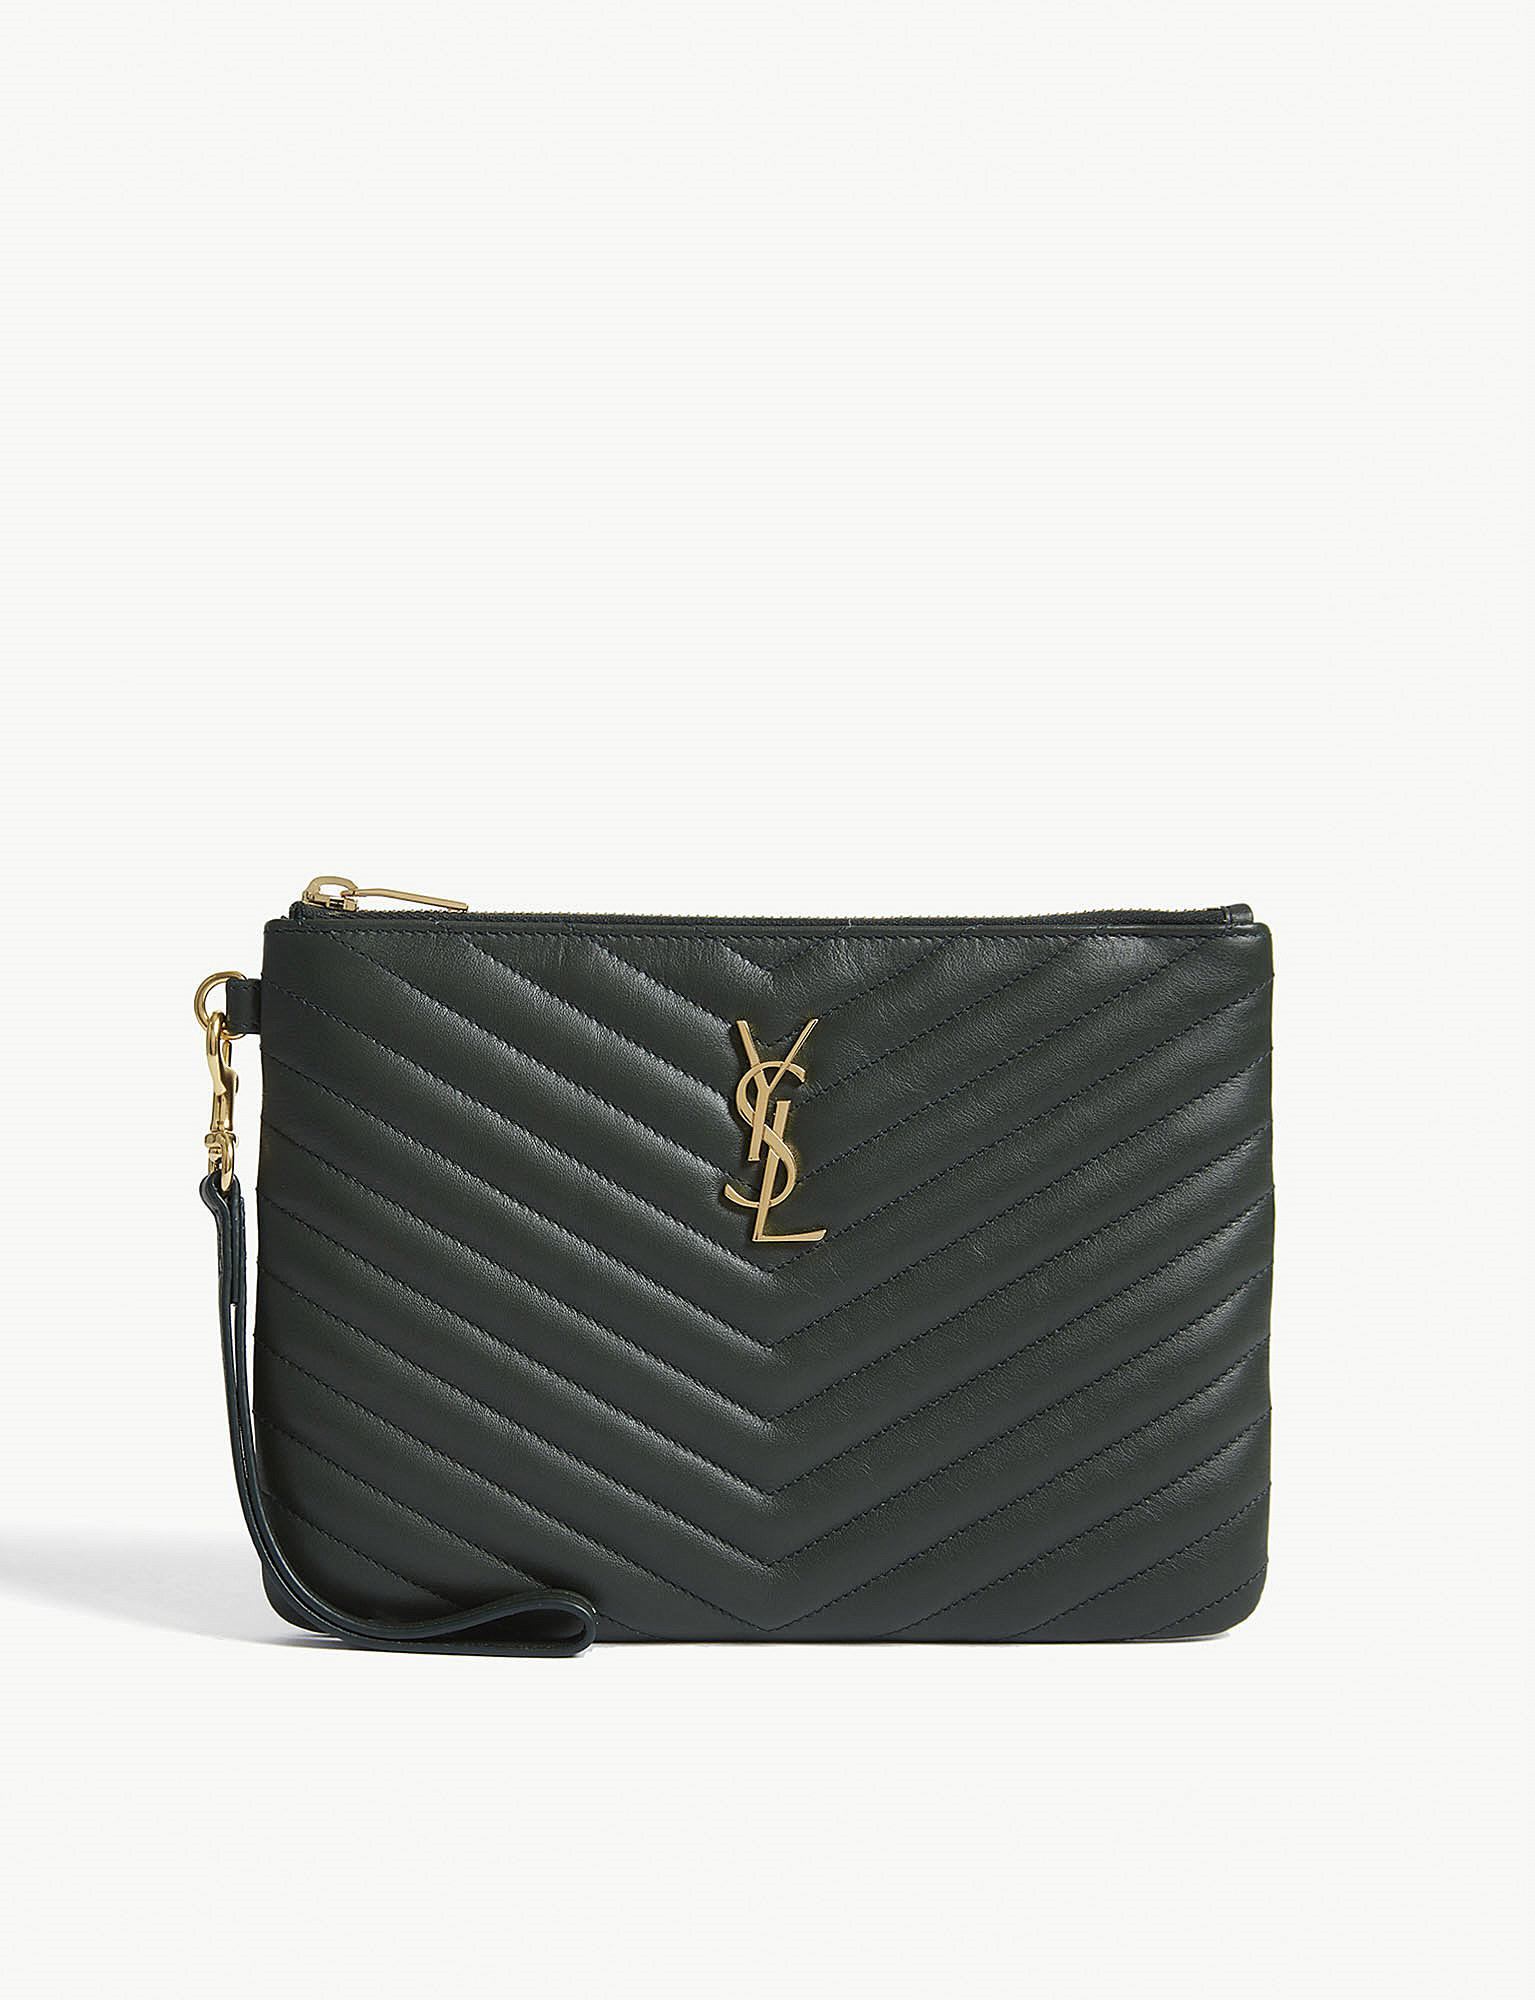 Saint Laurent green monogram small quilted leather pouch Reliable CRyWZFo3k